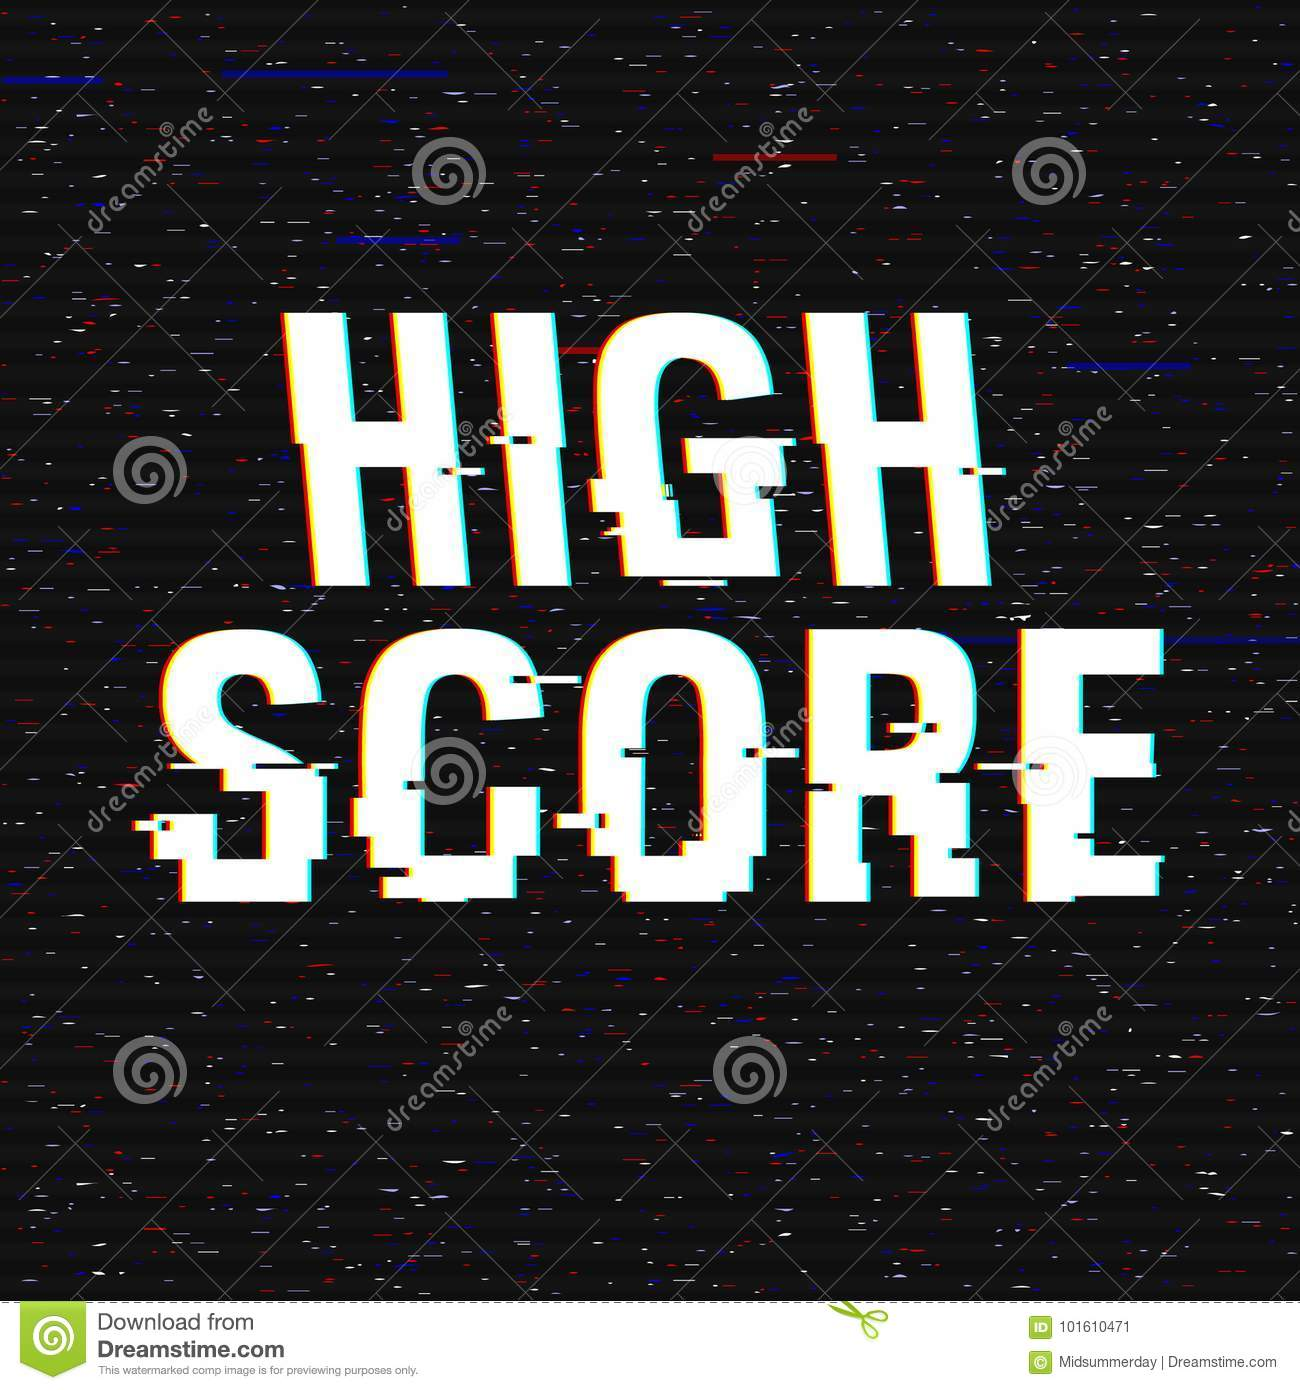 High Score glitch text. Anaglyph 3D effect. Technological retro background. Vector illustration. Creative web template